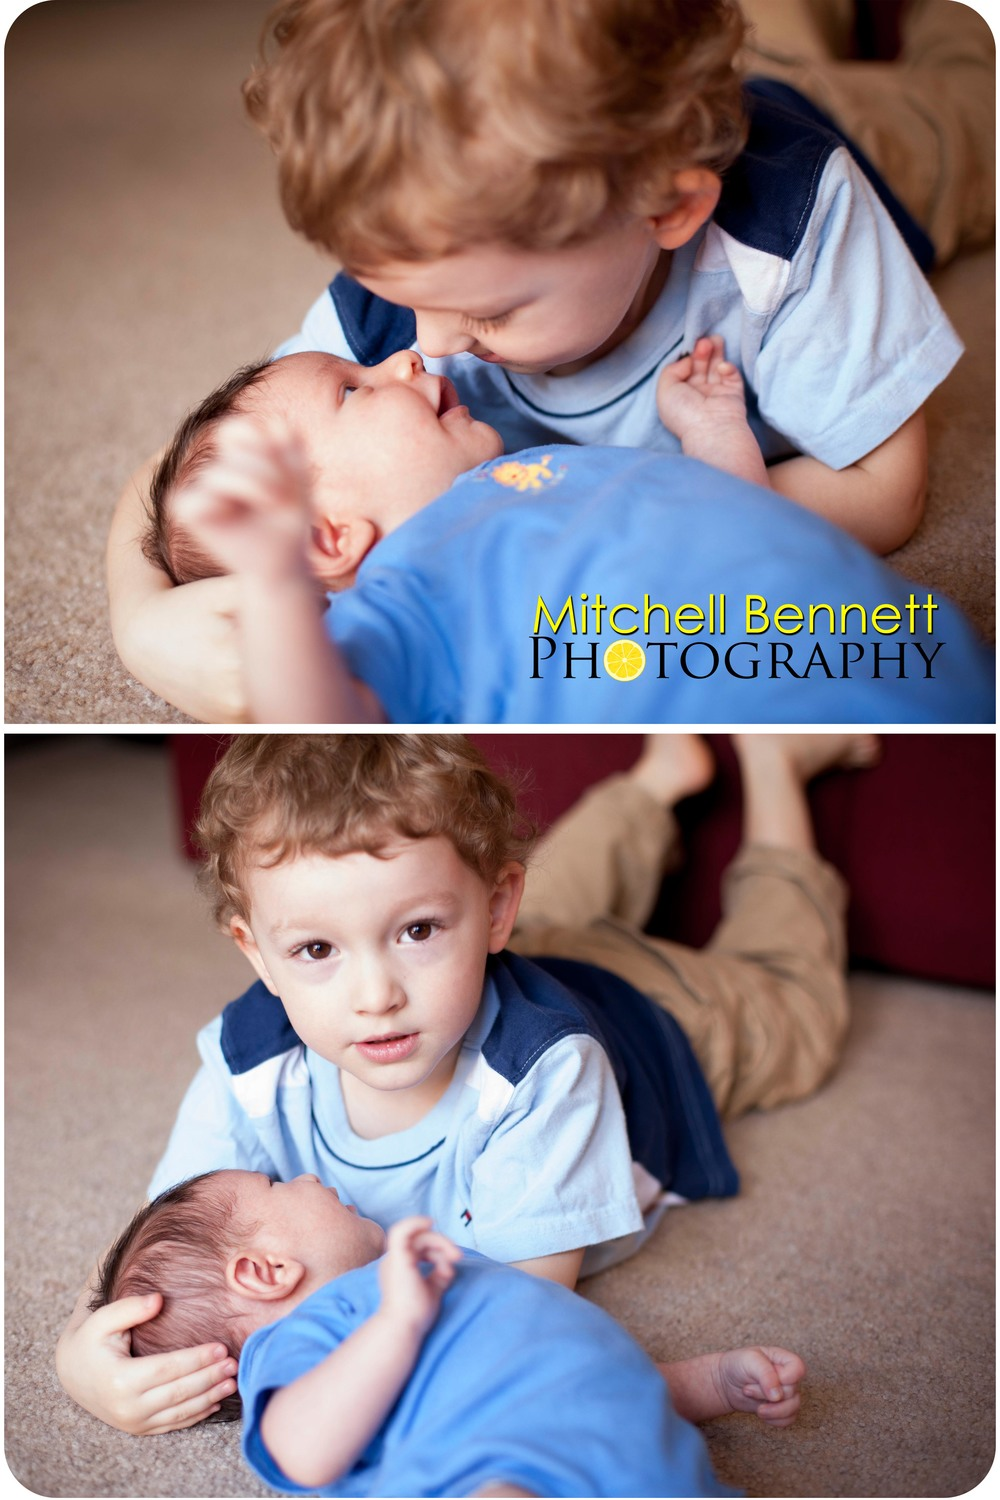 It was fun watching them interact. Julian was facinated by his big brother.